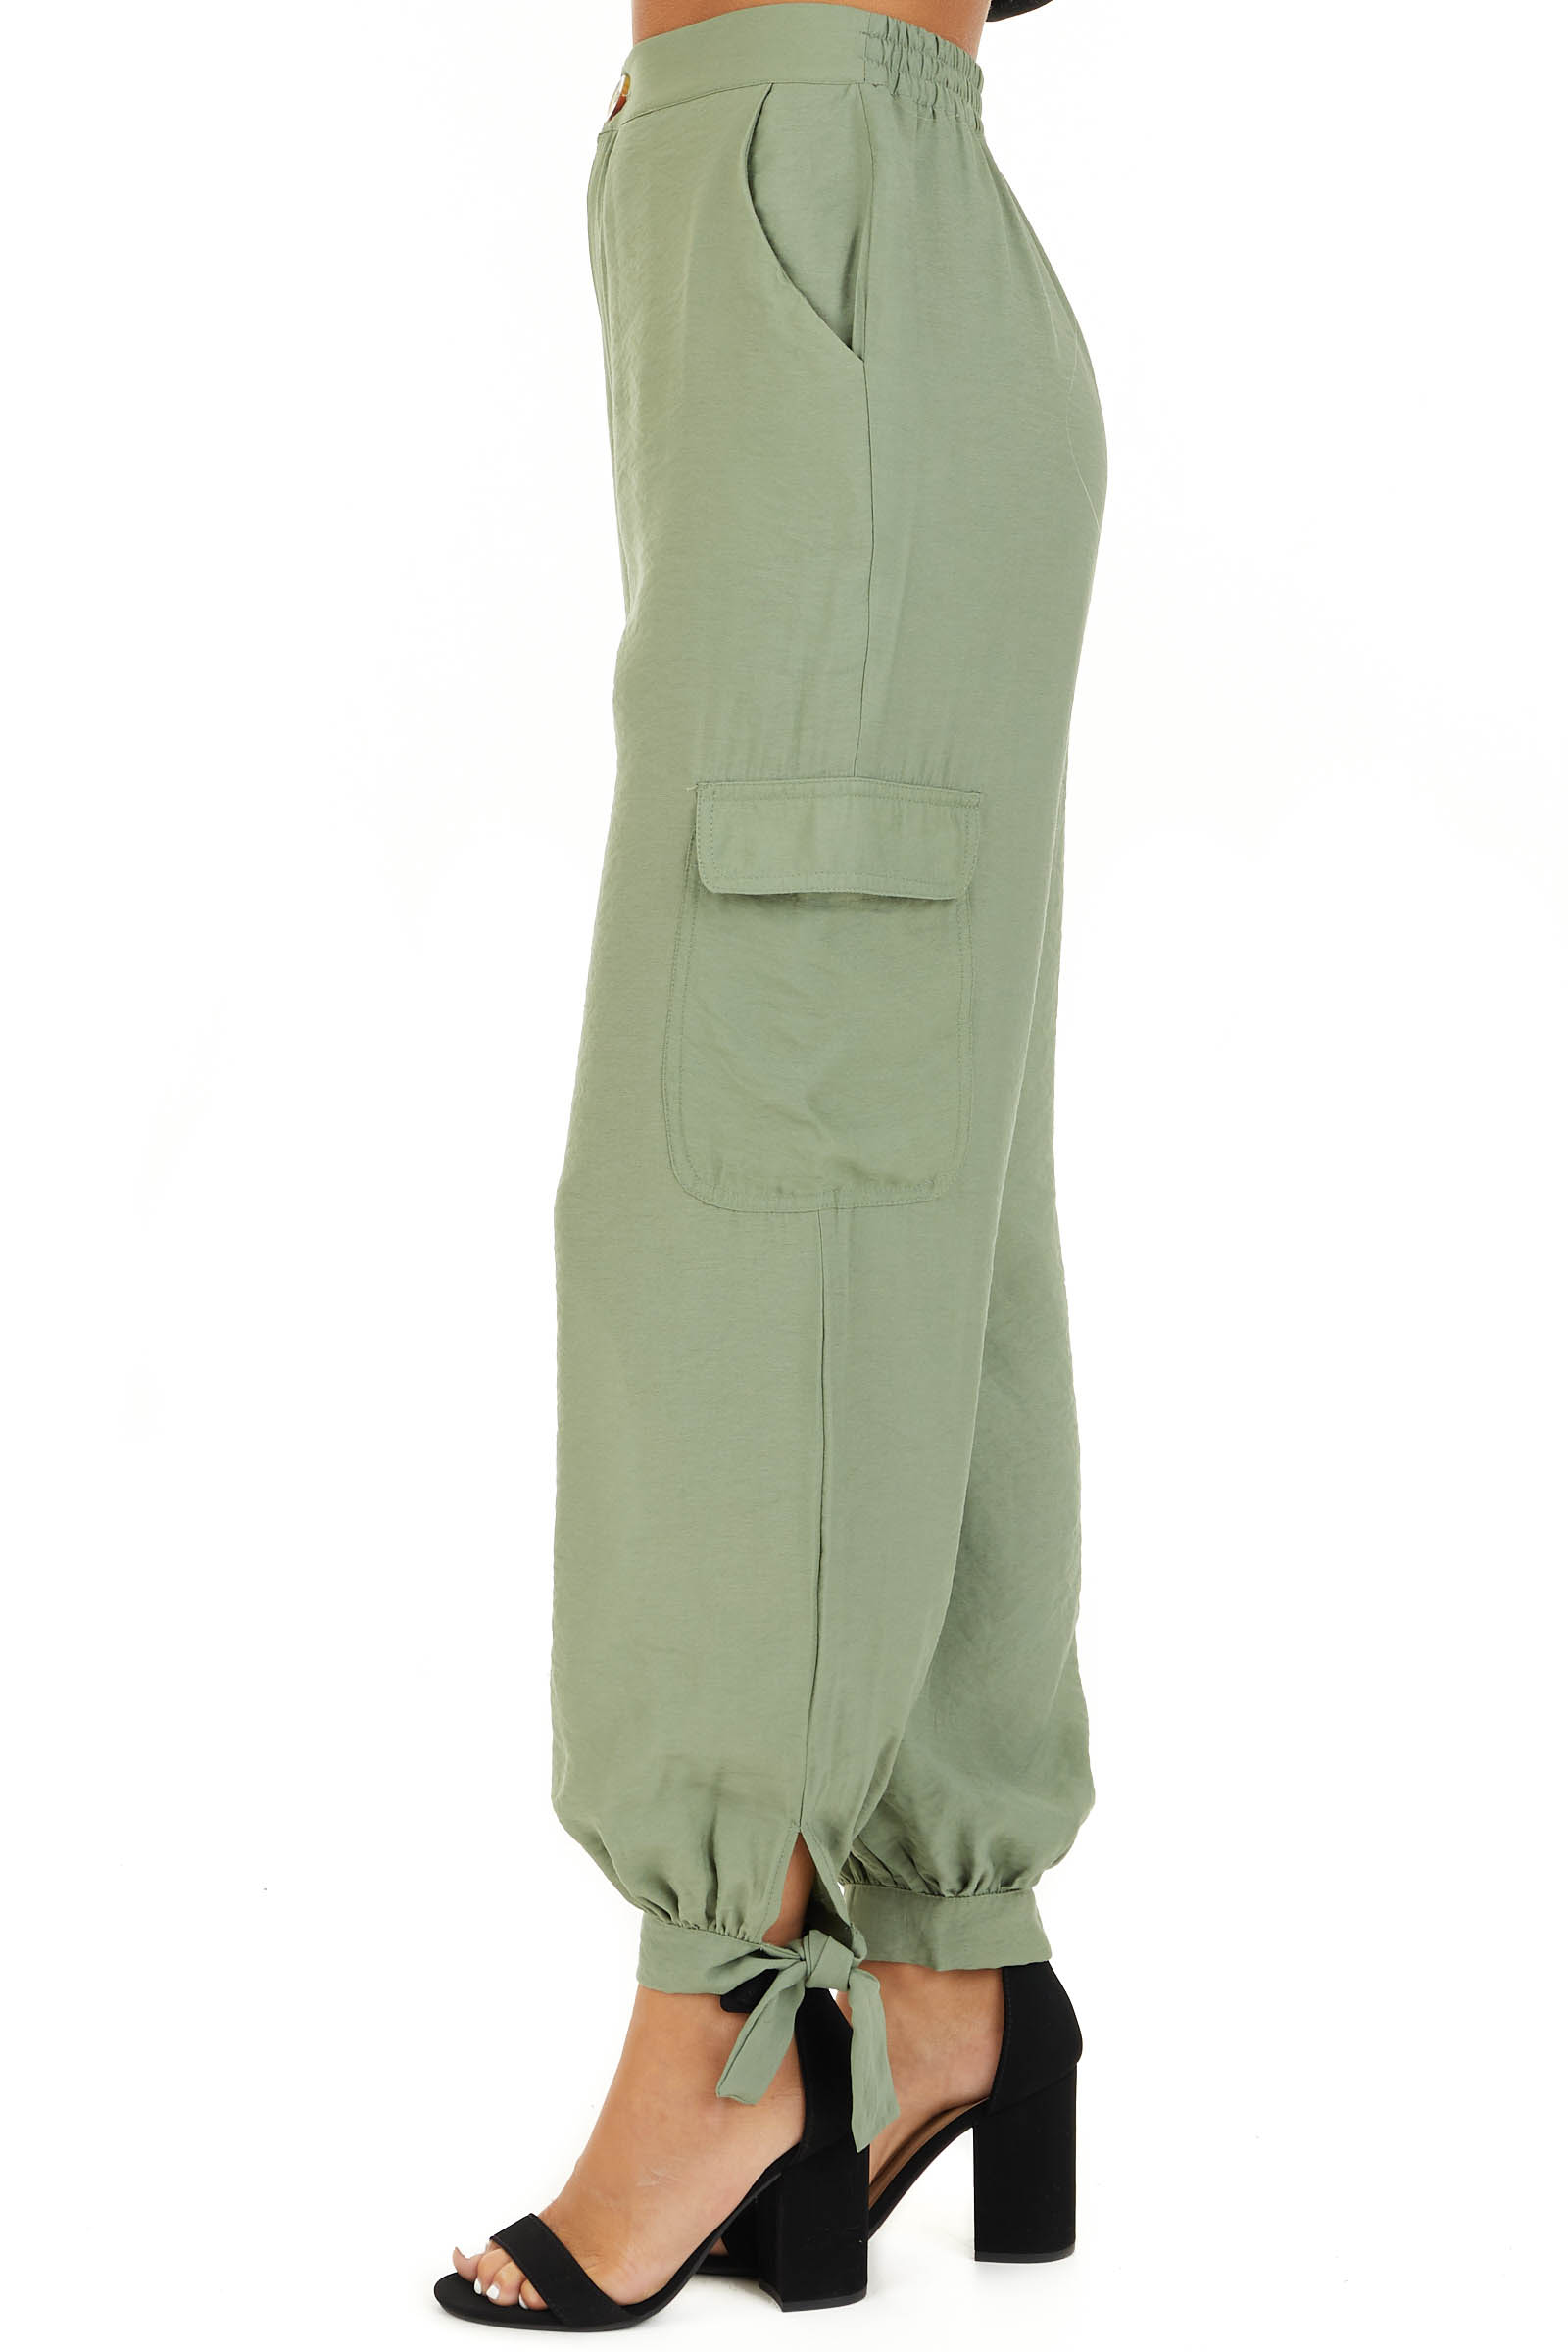 Pistachio Green High Waisted Cargo Pants with Ankle Ties side view